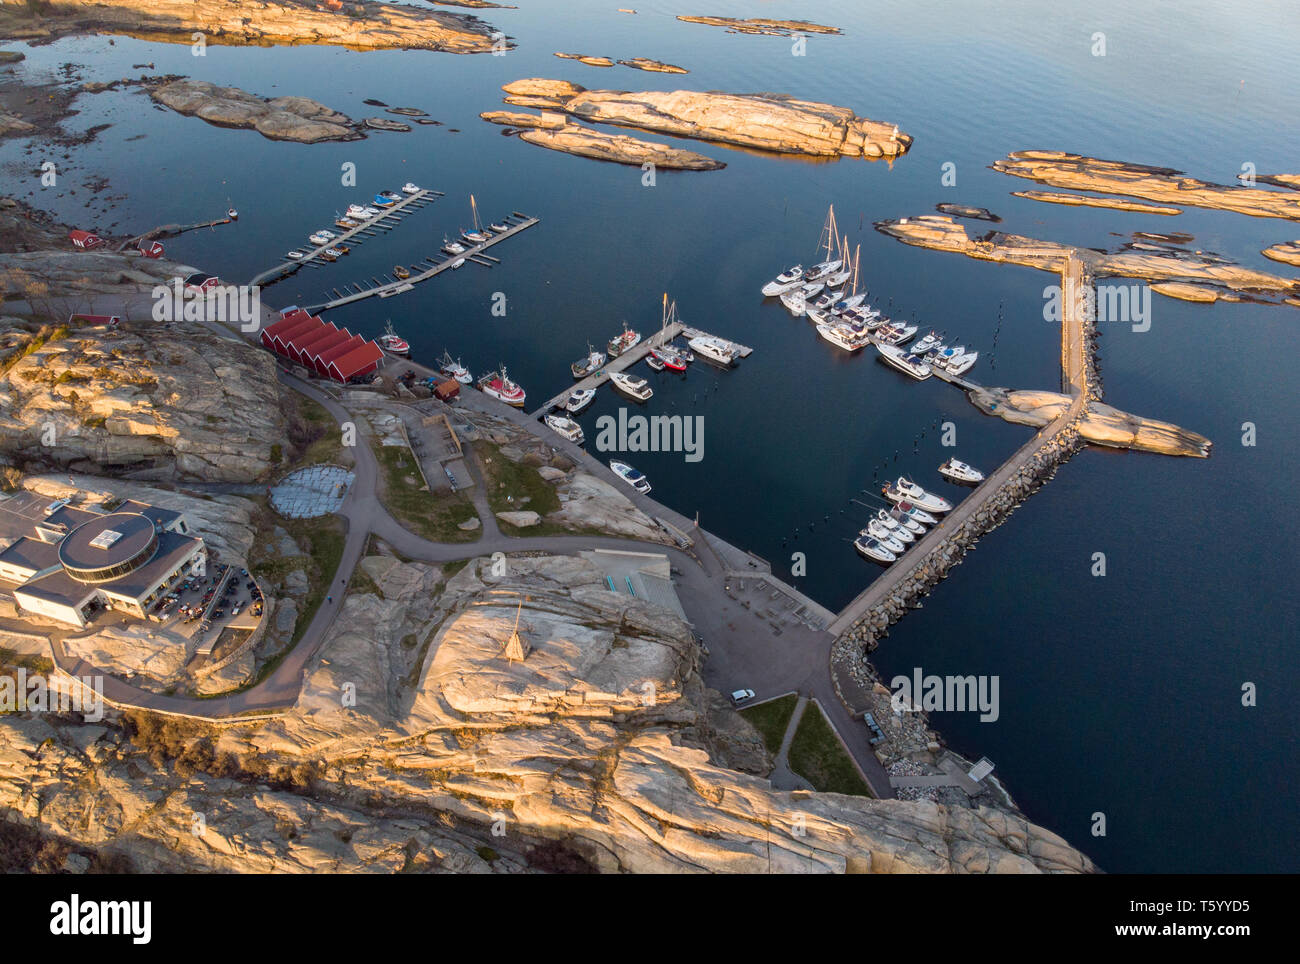 'The world's end' rocks, visitor centrum and yacht harbour from a drone in Tjøme, Norway - Stock Image